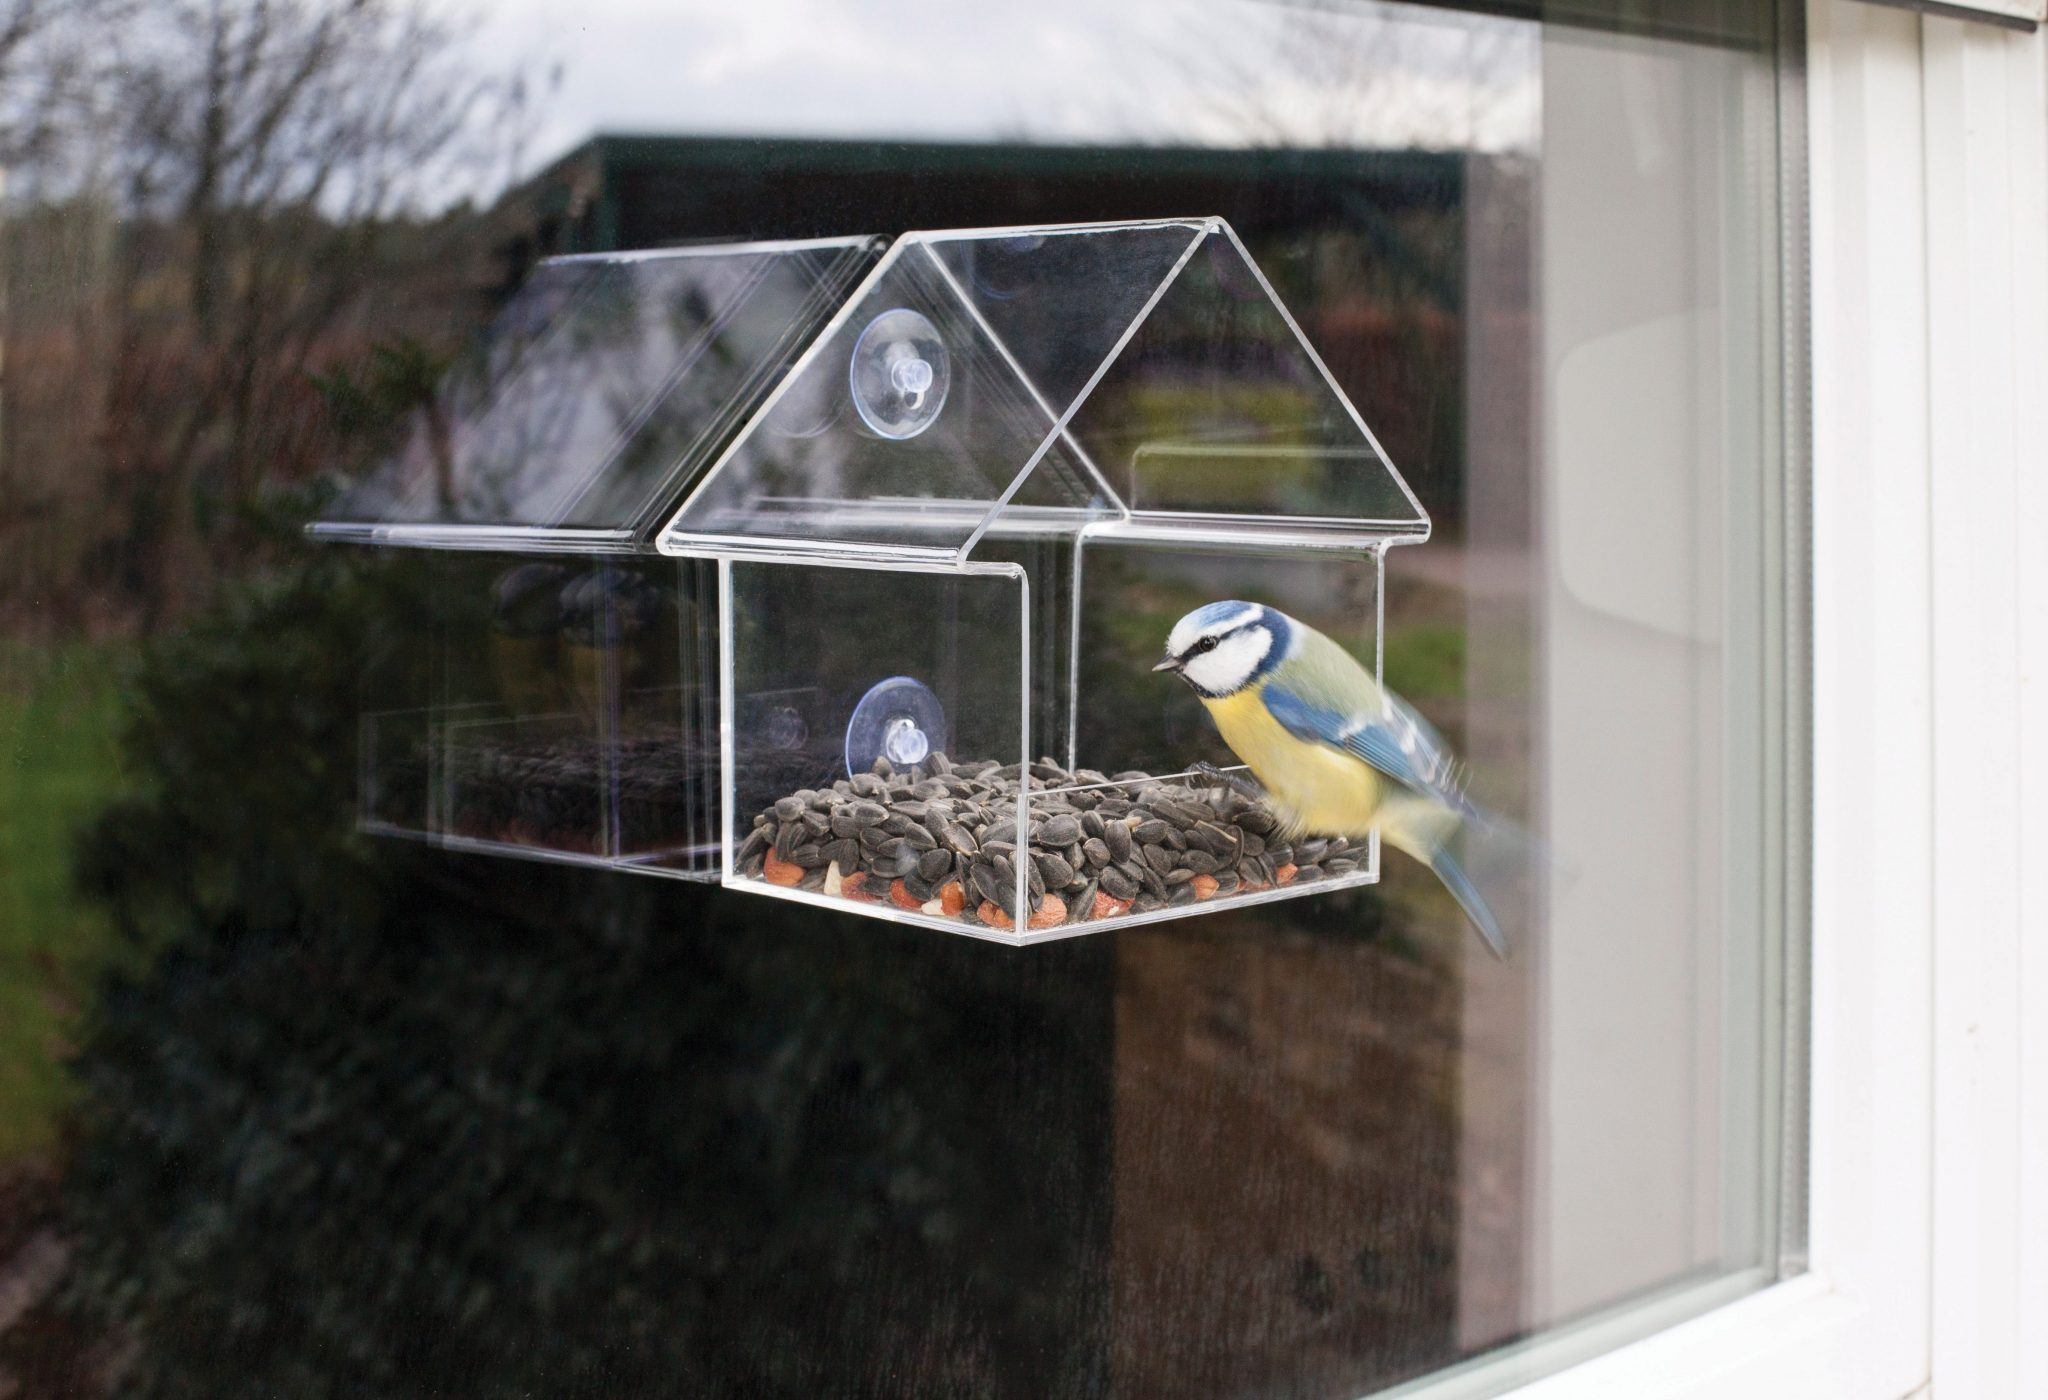 feeders i view nature products best anywhere birds acrylic bird feeder side window cardinal